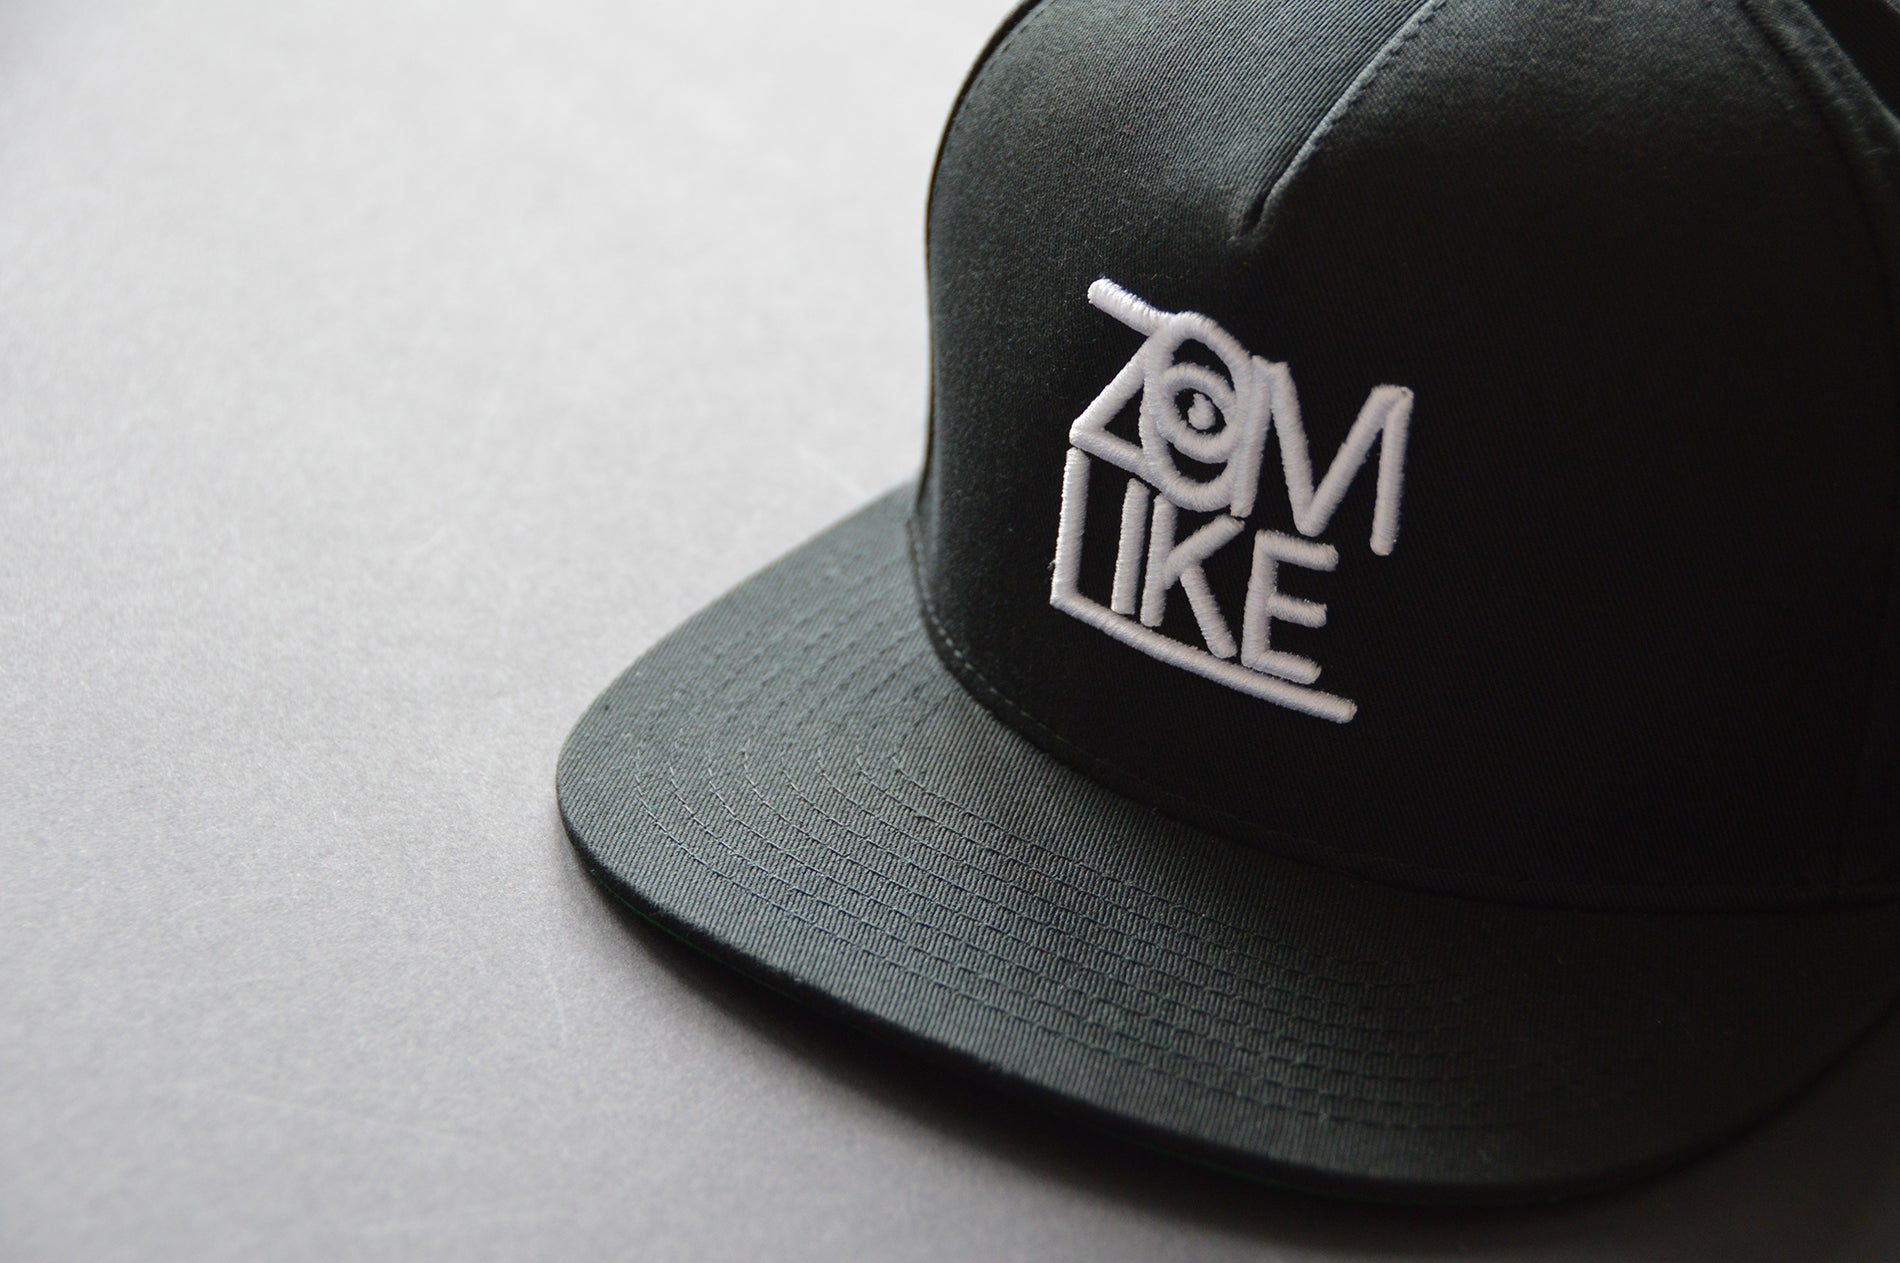 ZL Cap // black (green) - 2 Tone 5 Panel Snapback Cap